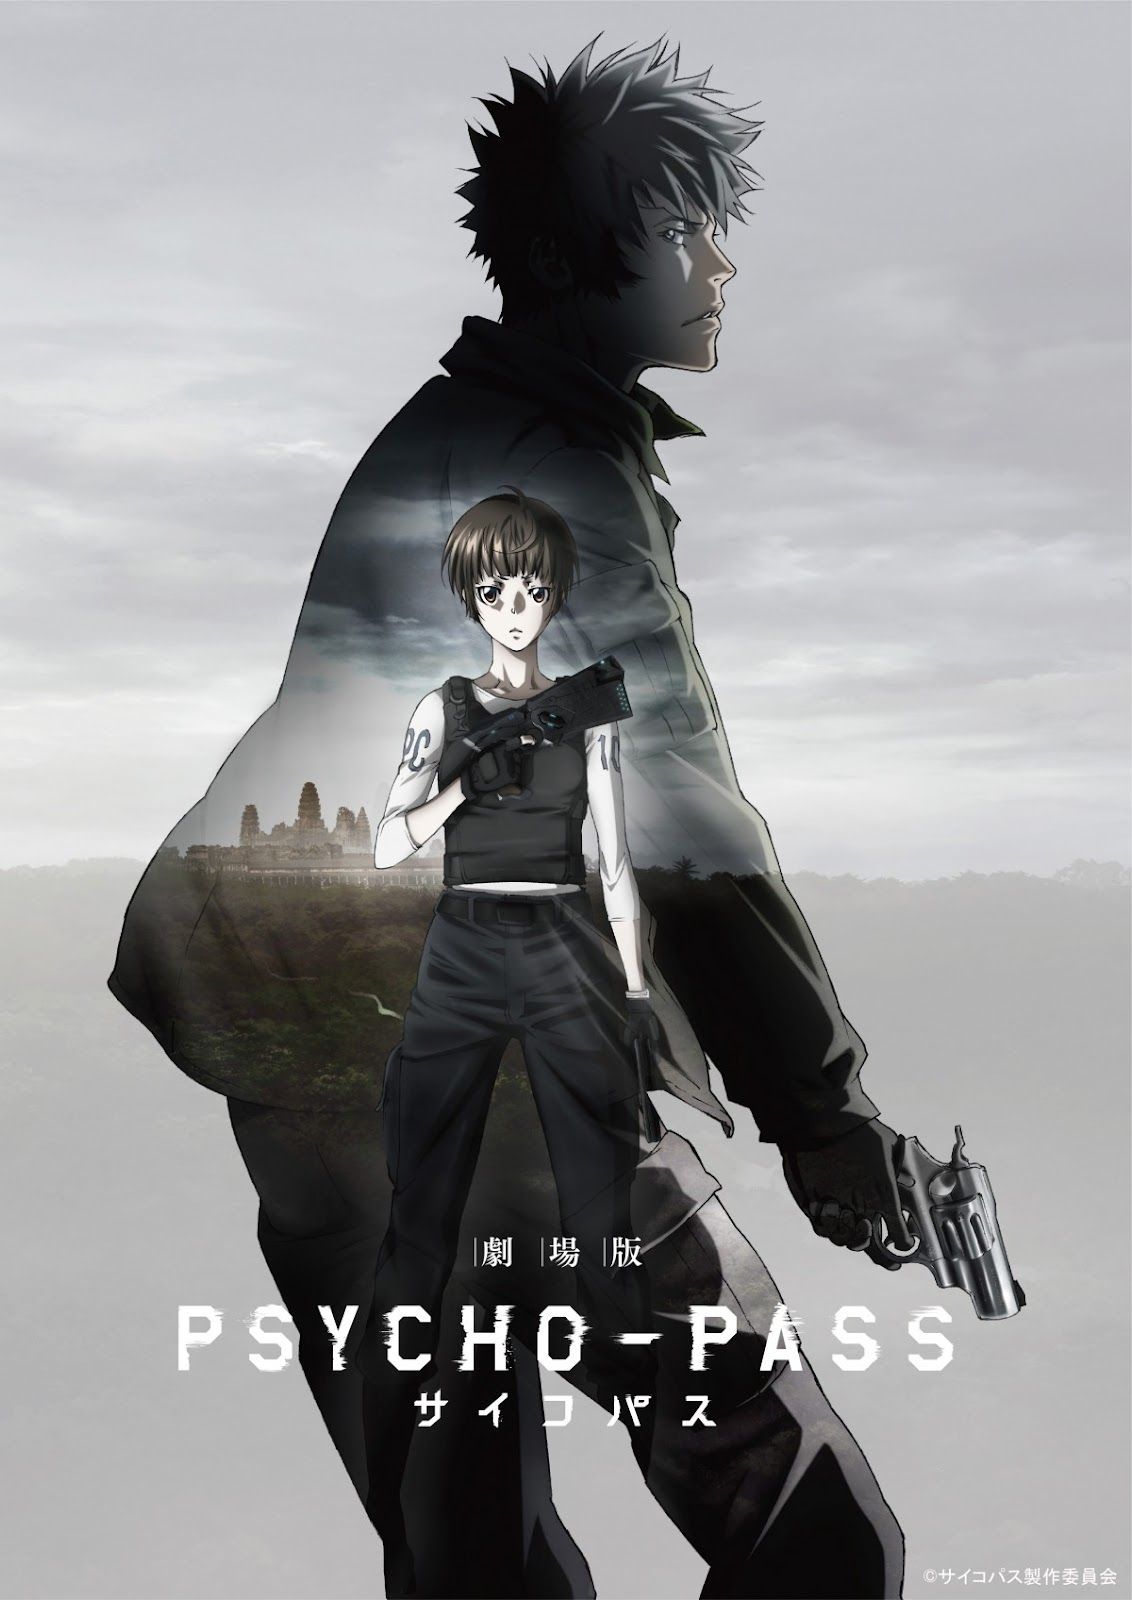 Top 10 Cyberpunk Anime Masterpieces That you Need to Watch - Psycho-Pass